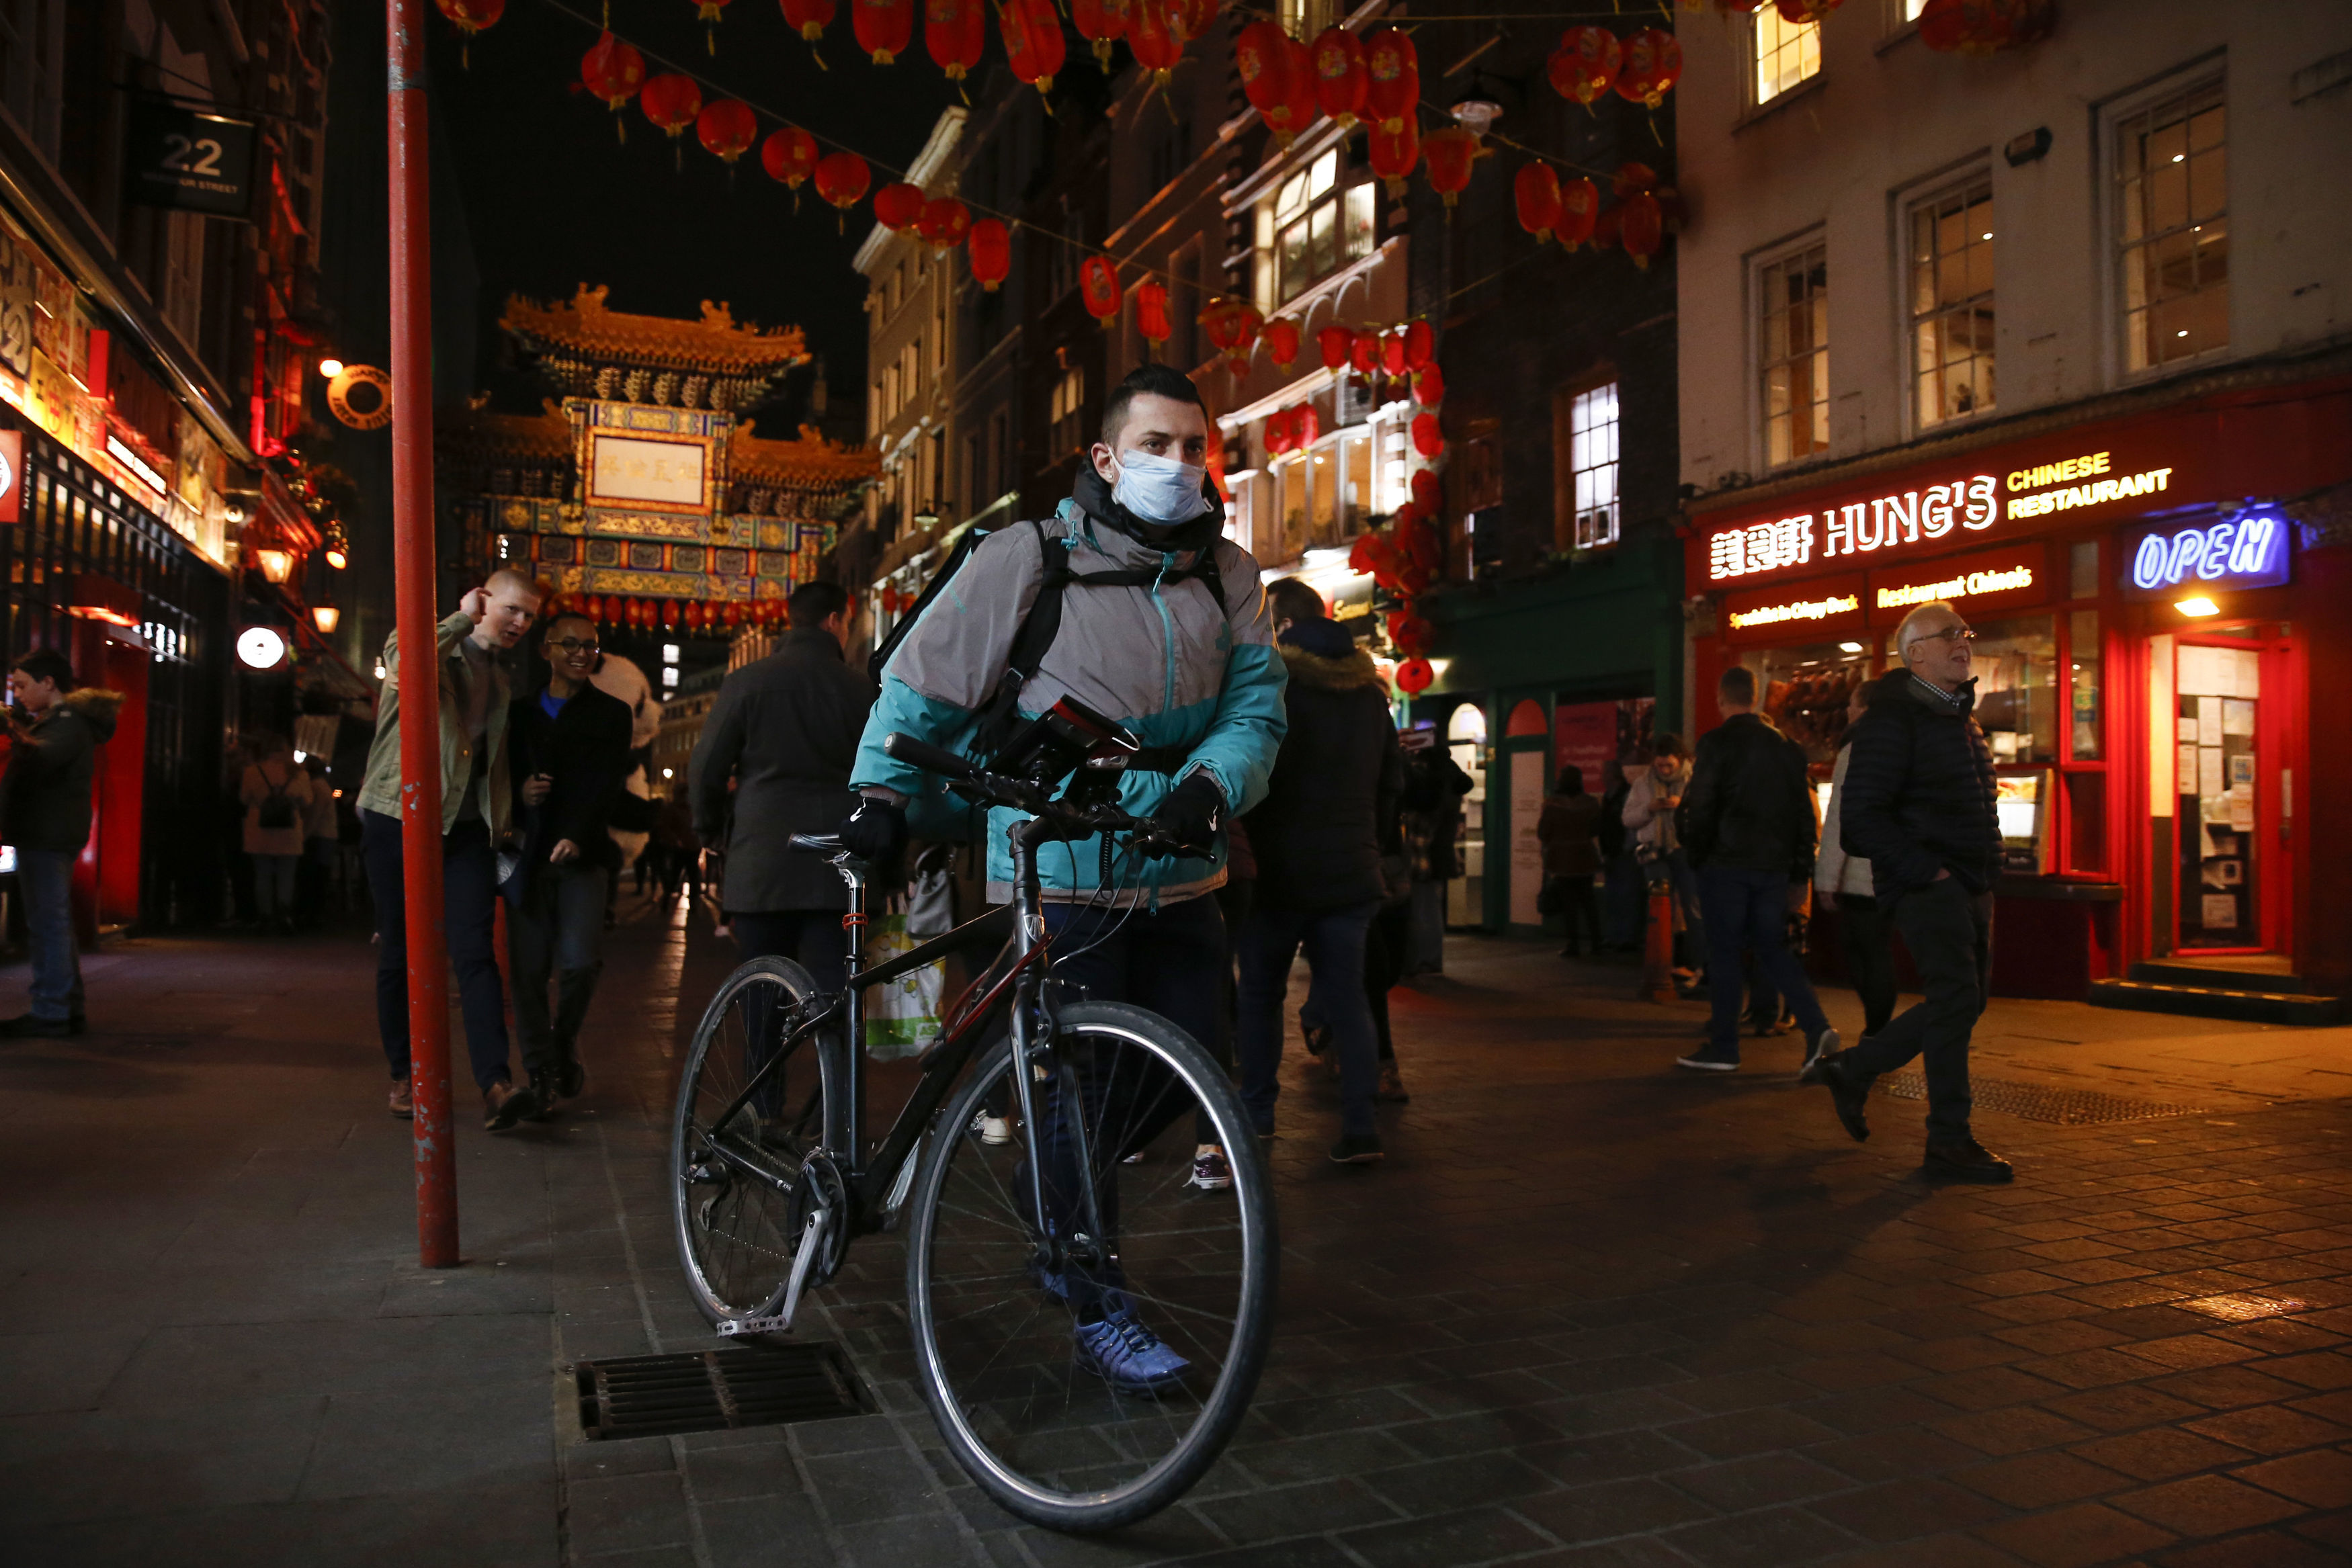 Deliveroo will still offer delivery service during the second national lockdown in England